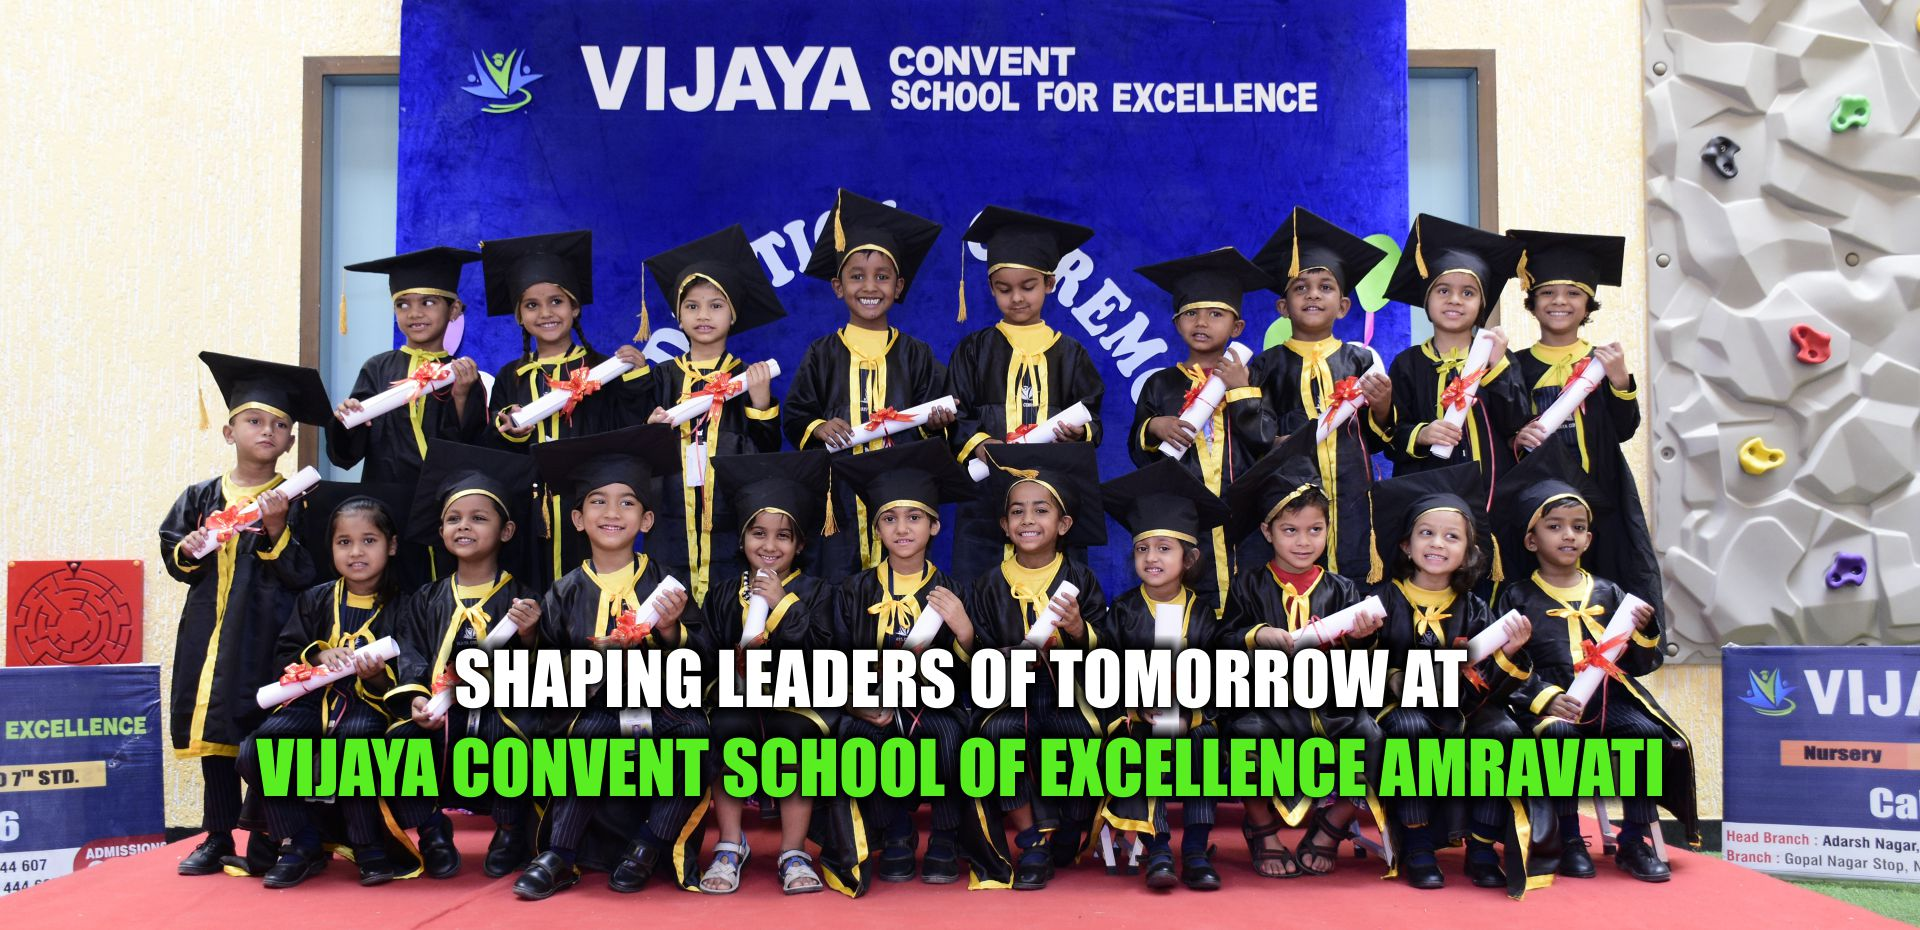 New-admission-amravati-vijaya-convent-school-of-excellence